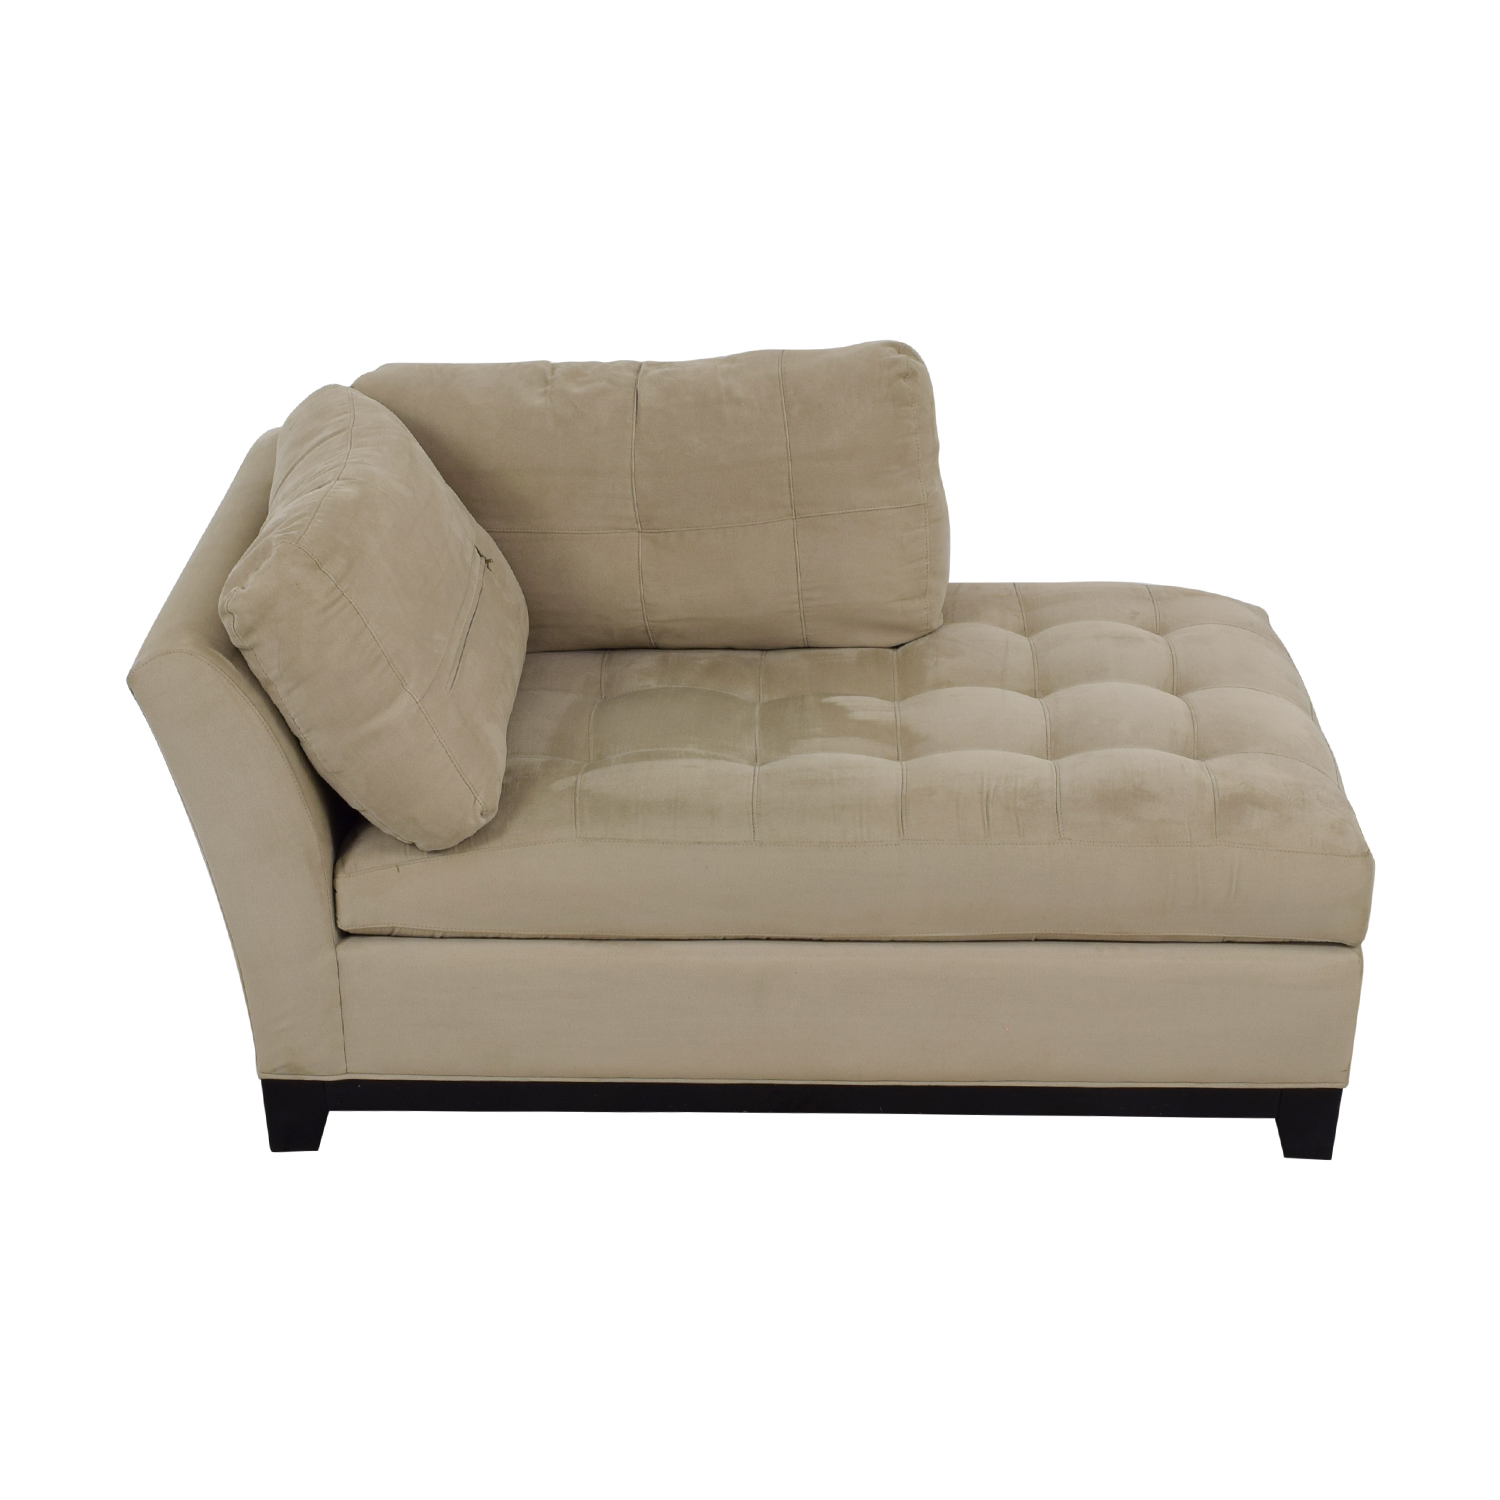 buy Raymour and Flanigan Beige Tufted Chaise Raymour and Flanigan Chaises